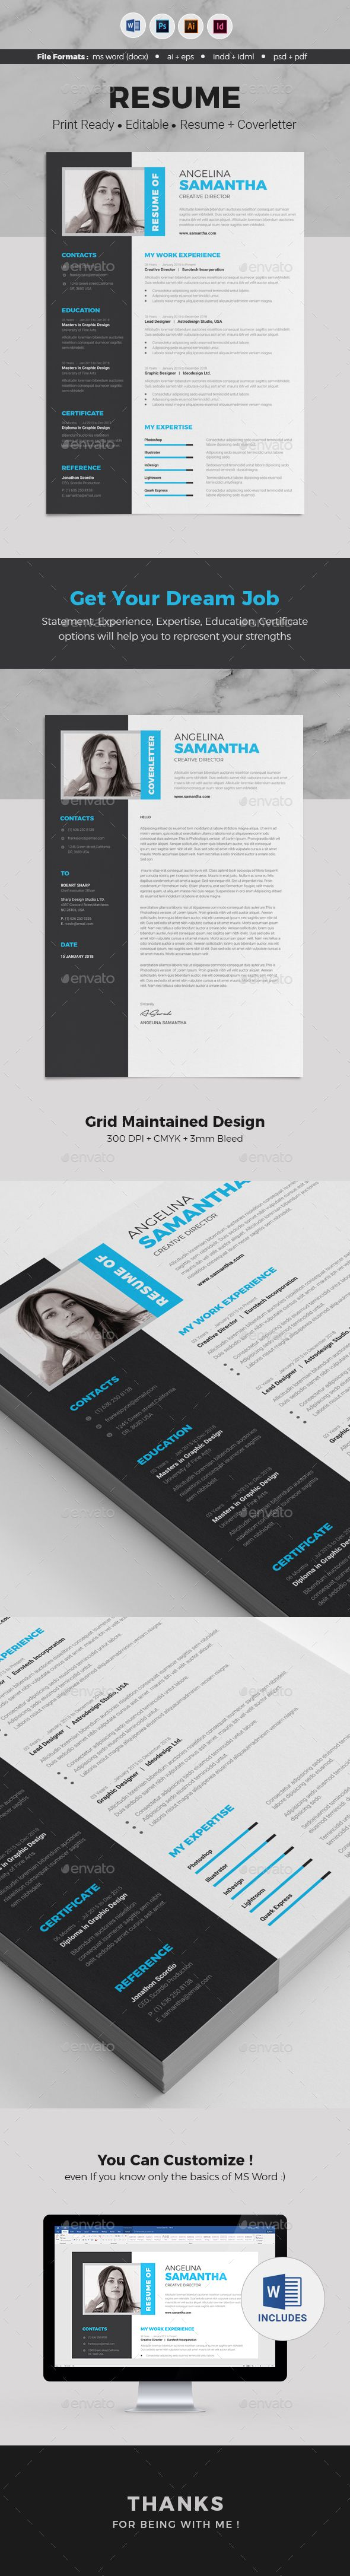 4343 Best Resume Templates Images On Pinterest